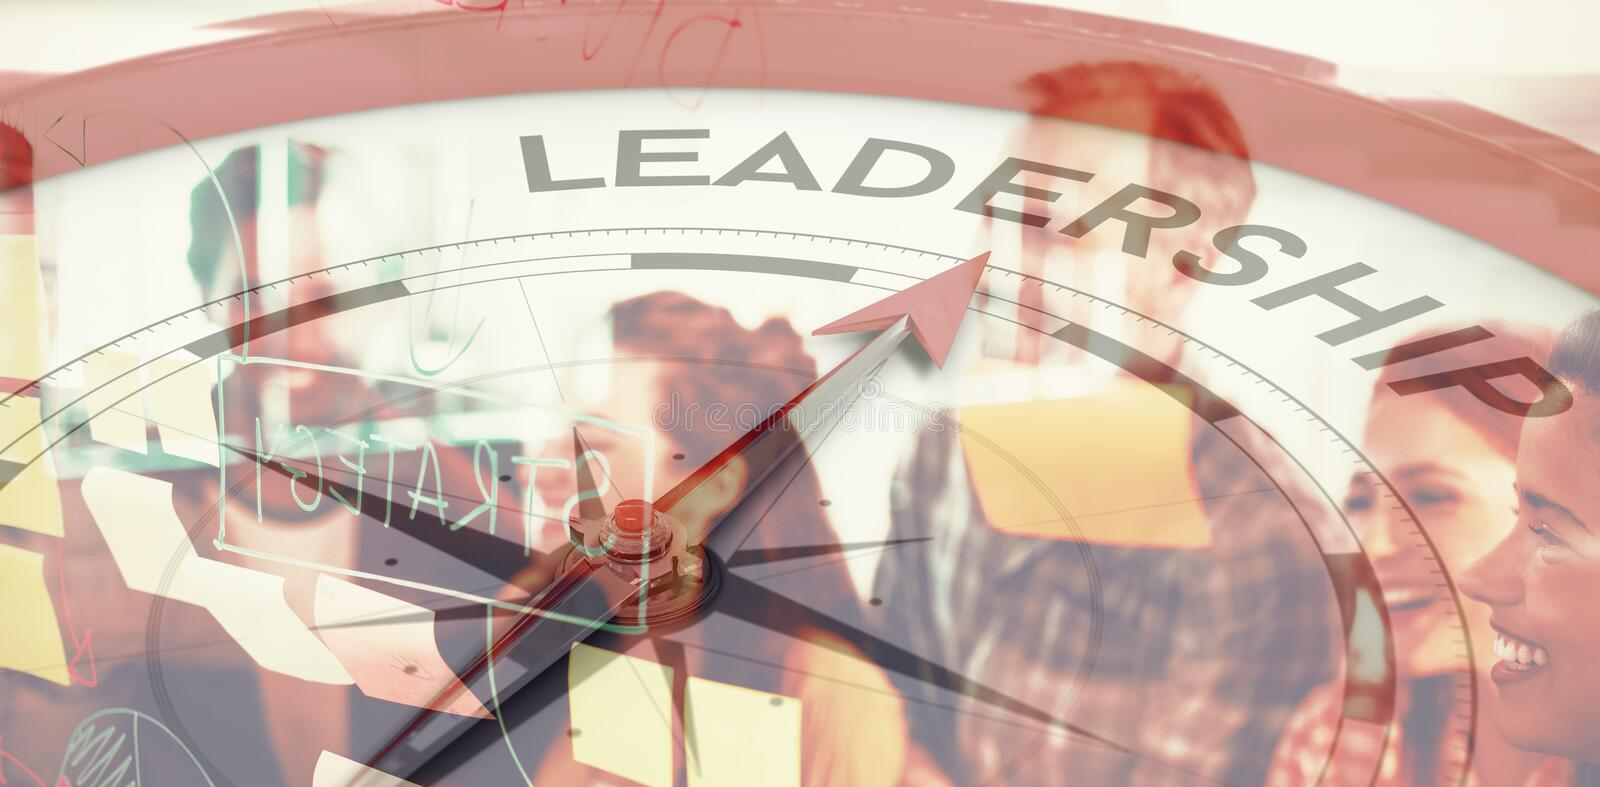 Composite image of compass pointing to leadership stock image